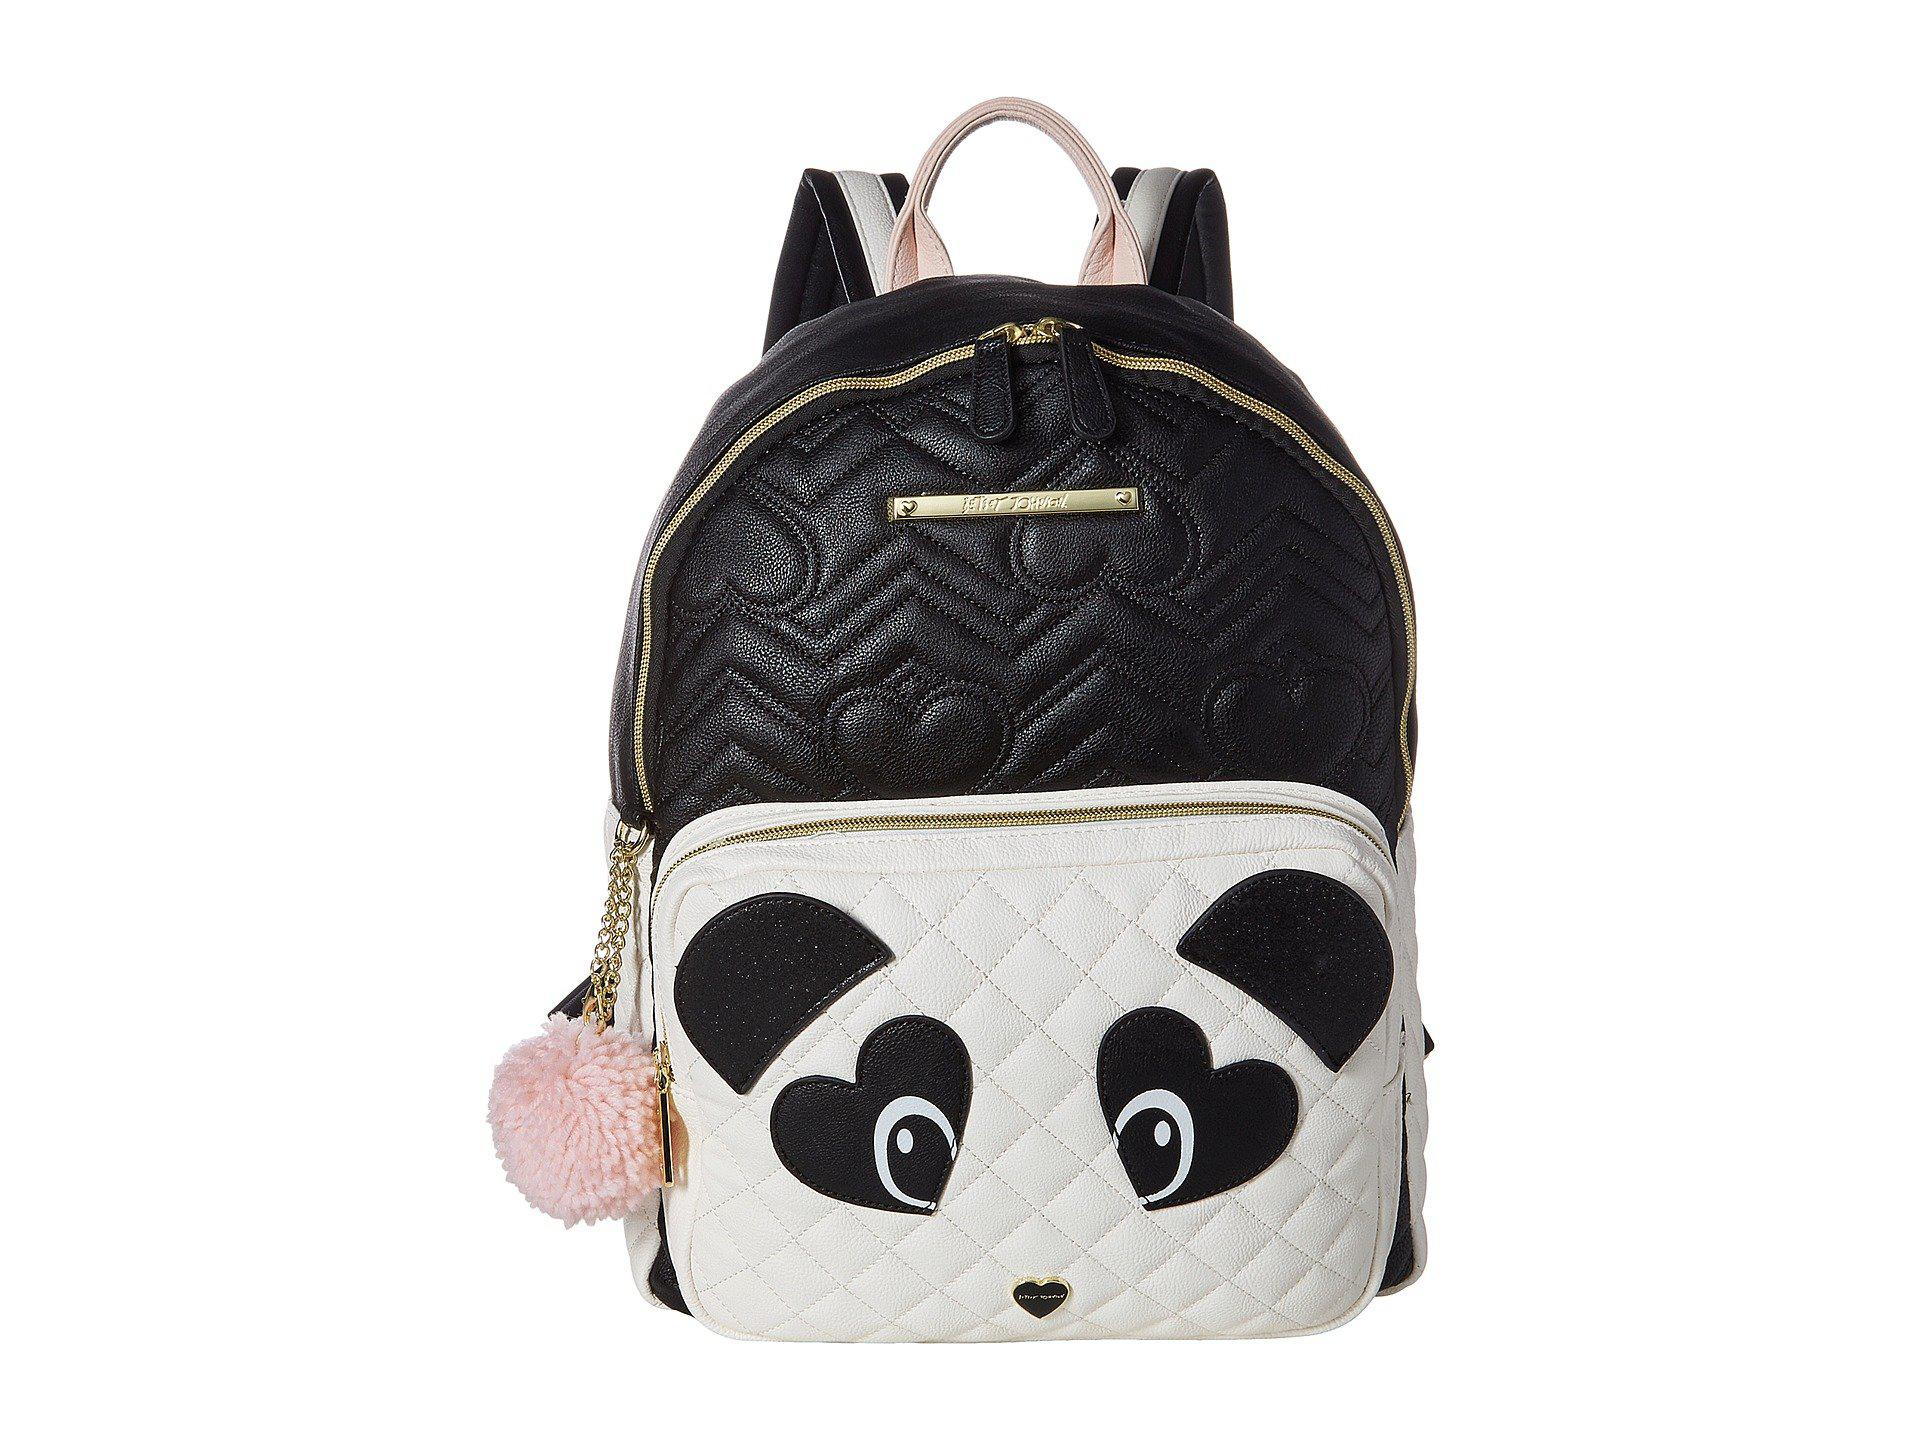 8a32bc82f209 Lyst - Betsey Johnson Cat Backpack in Black